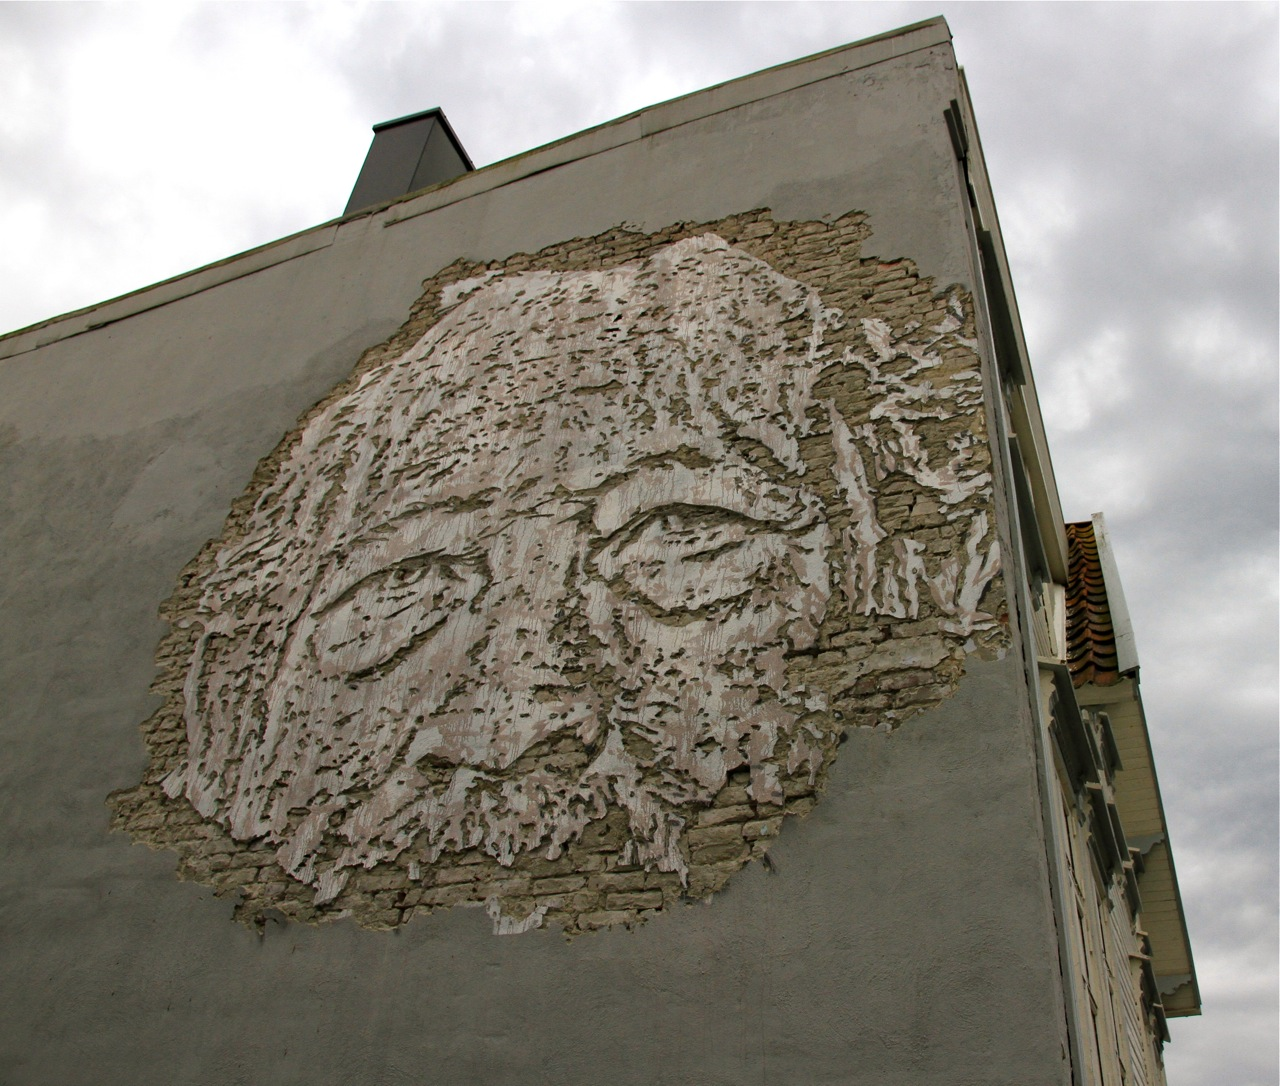 Nuart 2013: Street Pieces, Part 1: Vhils IMG_1331.jpg